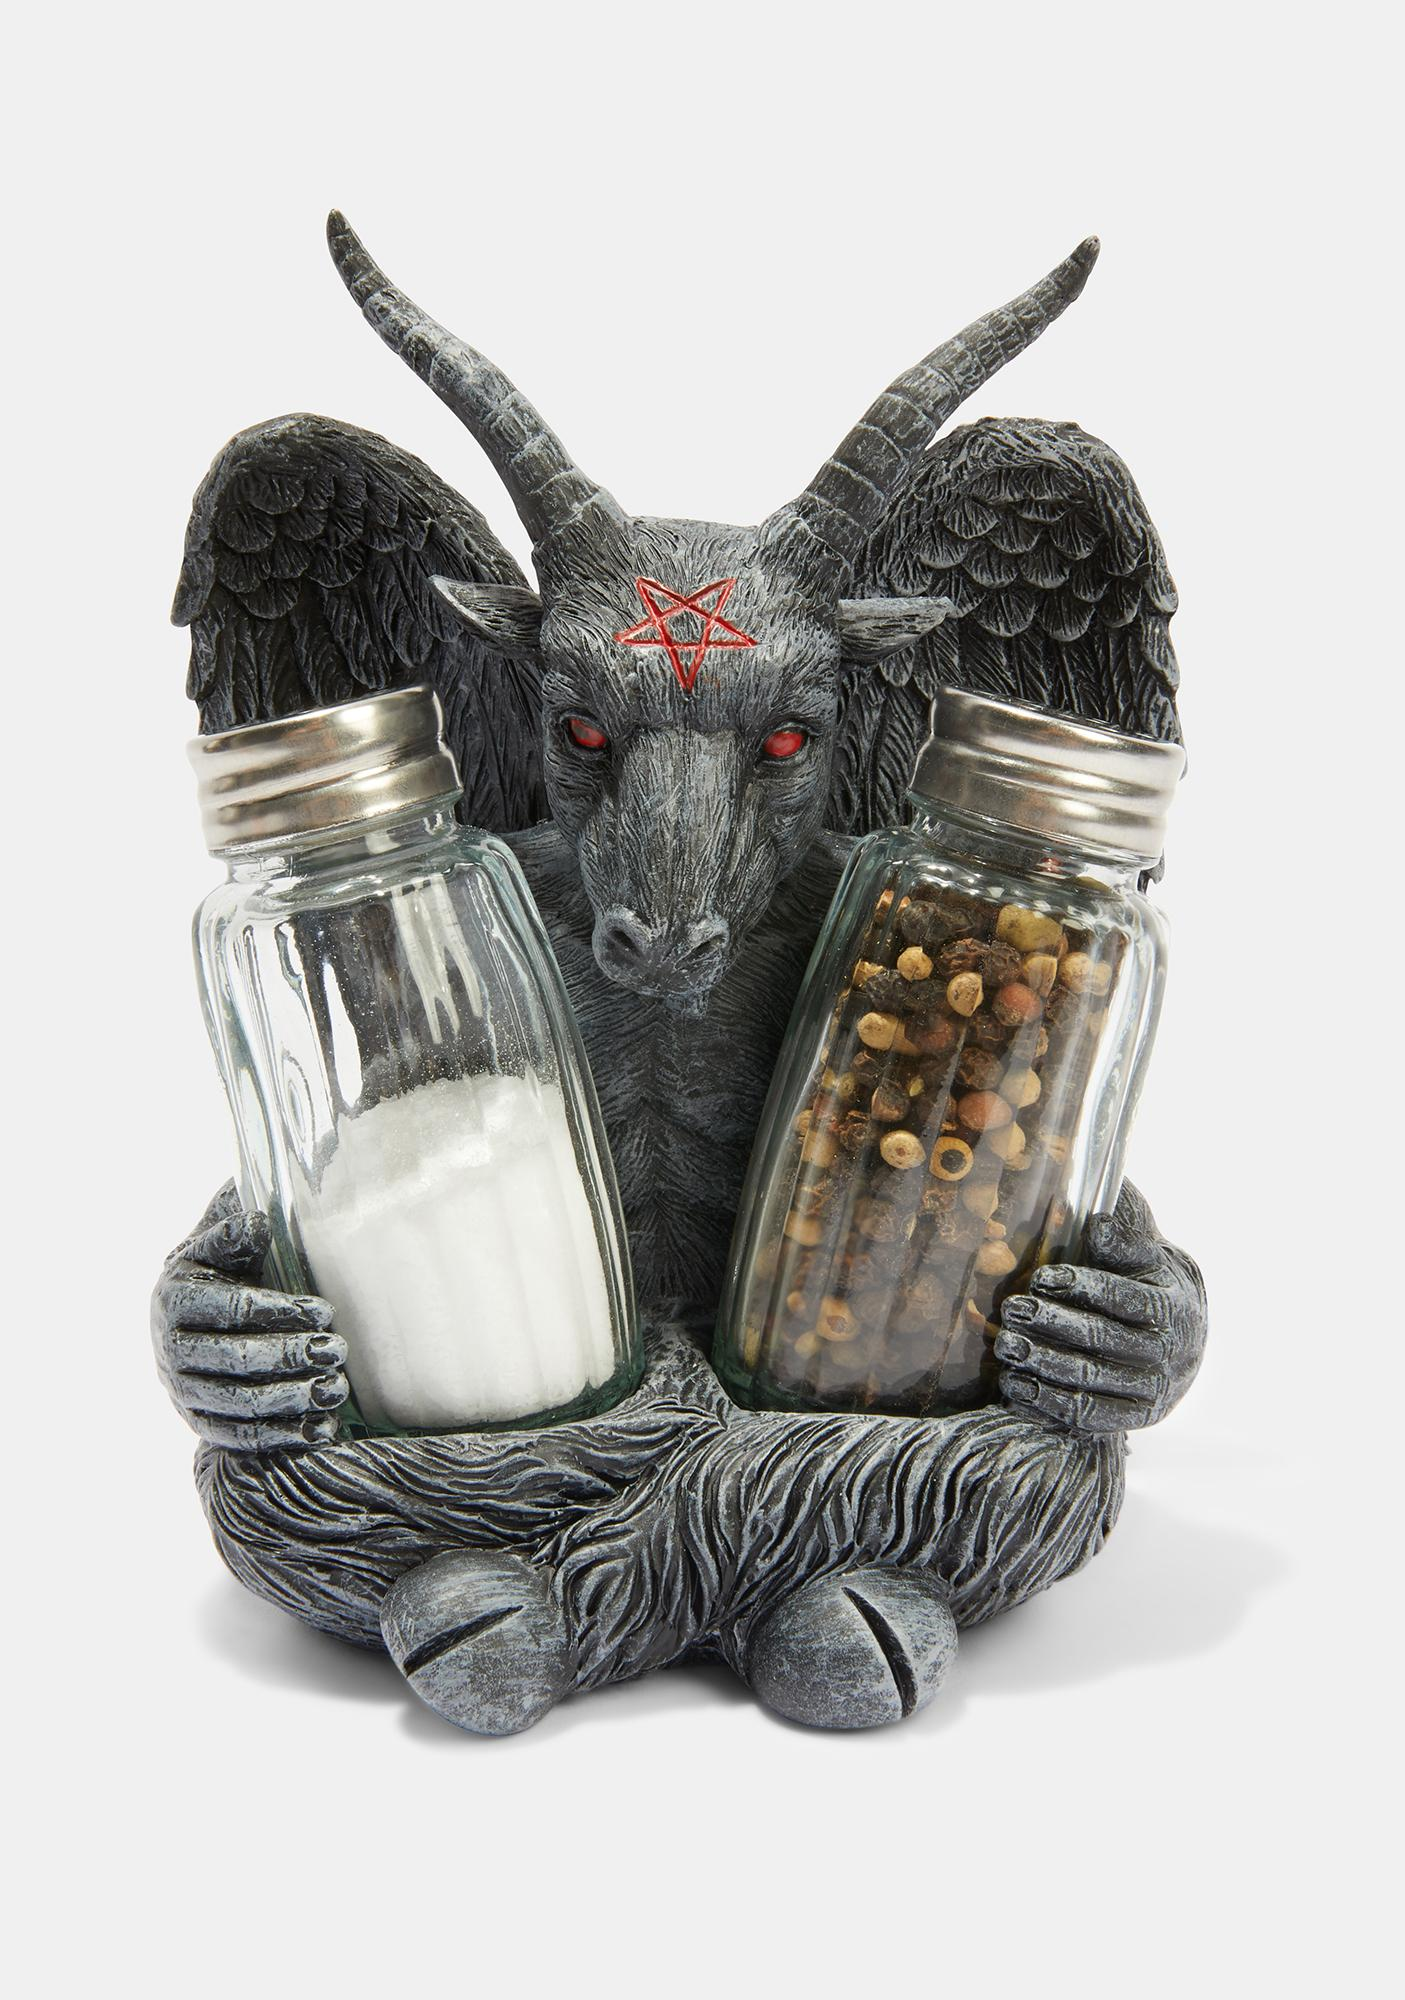 Kreepsville 666 Goat Head Salt and Pepper Shakers